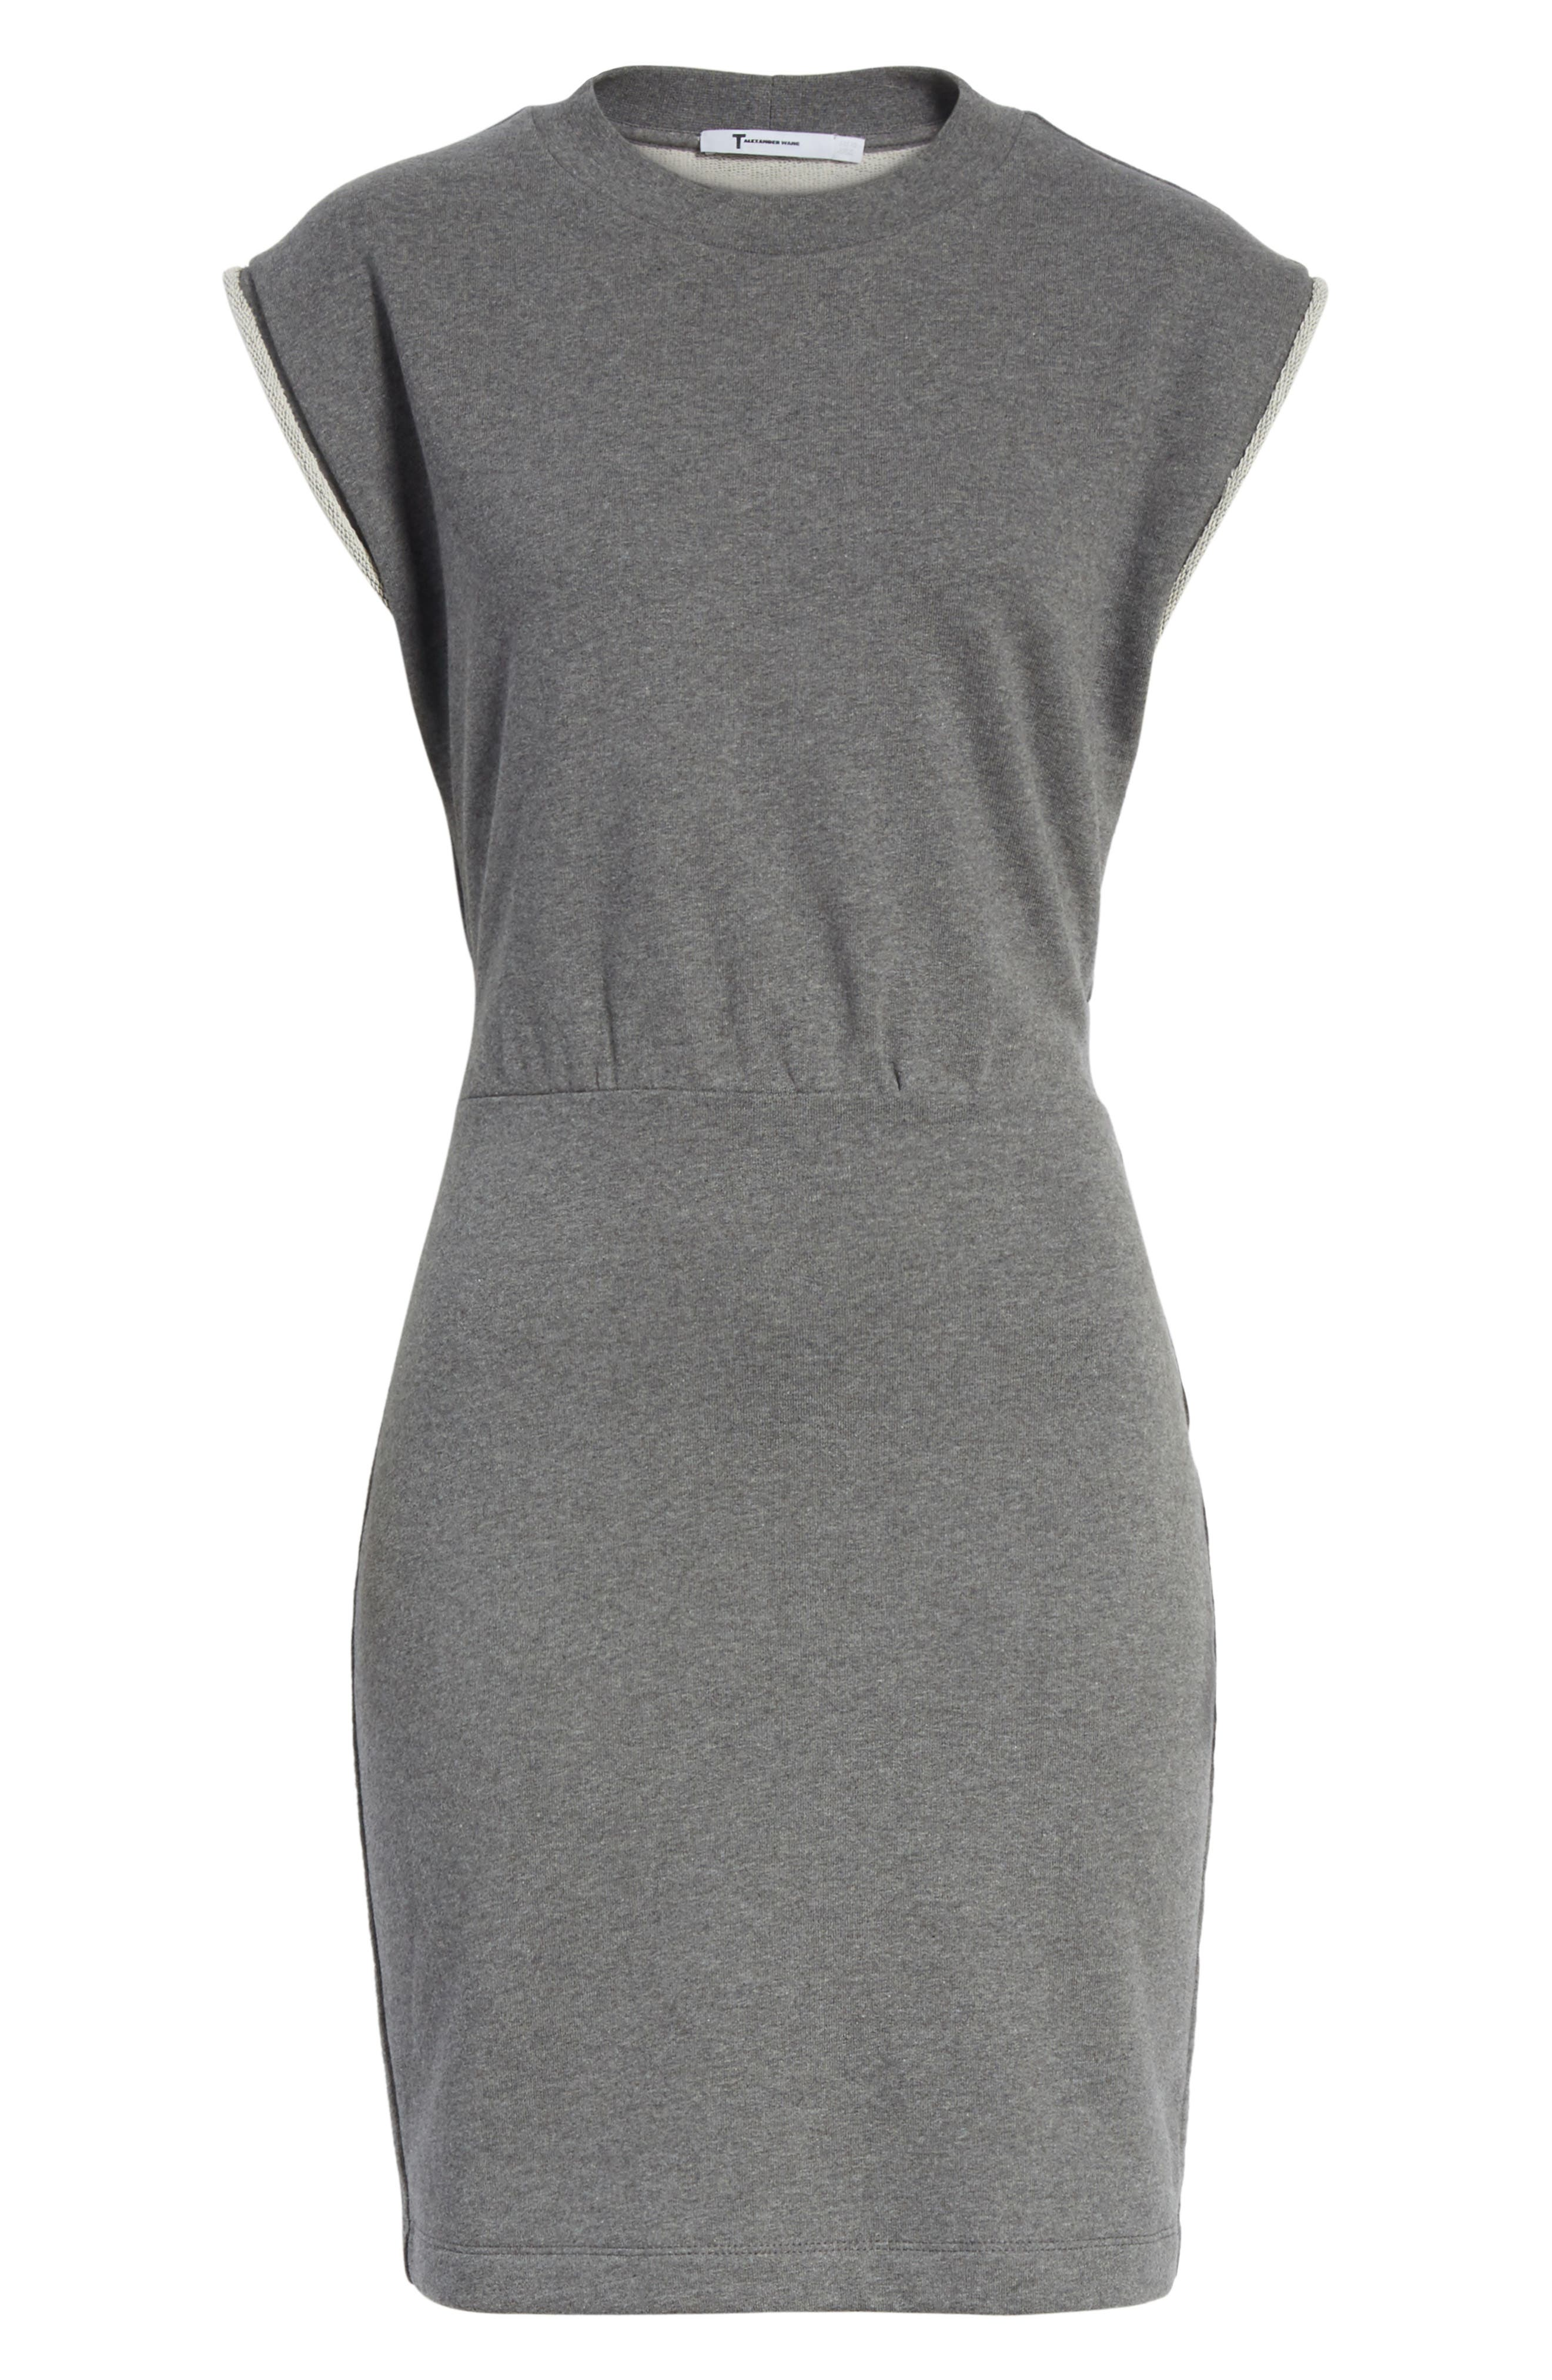 T by Alexander Wang French Terry Dress,                             Alternate thumbnail 6, color,                             020